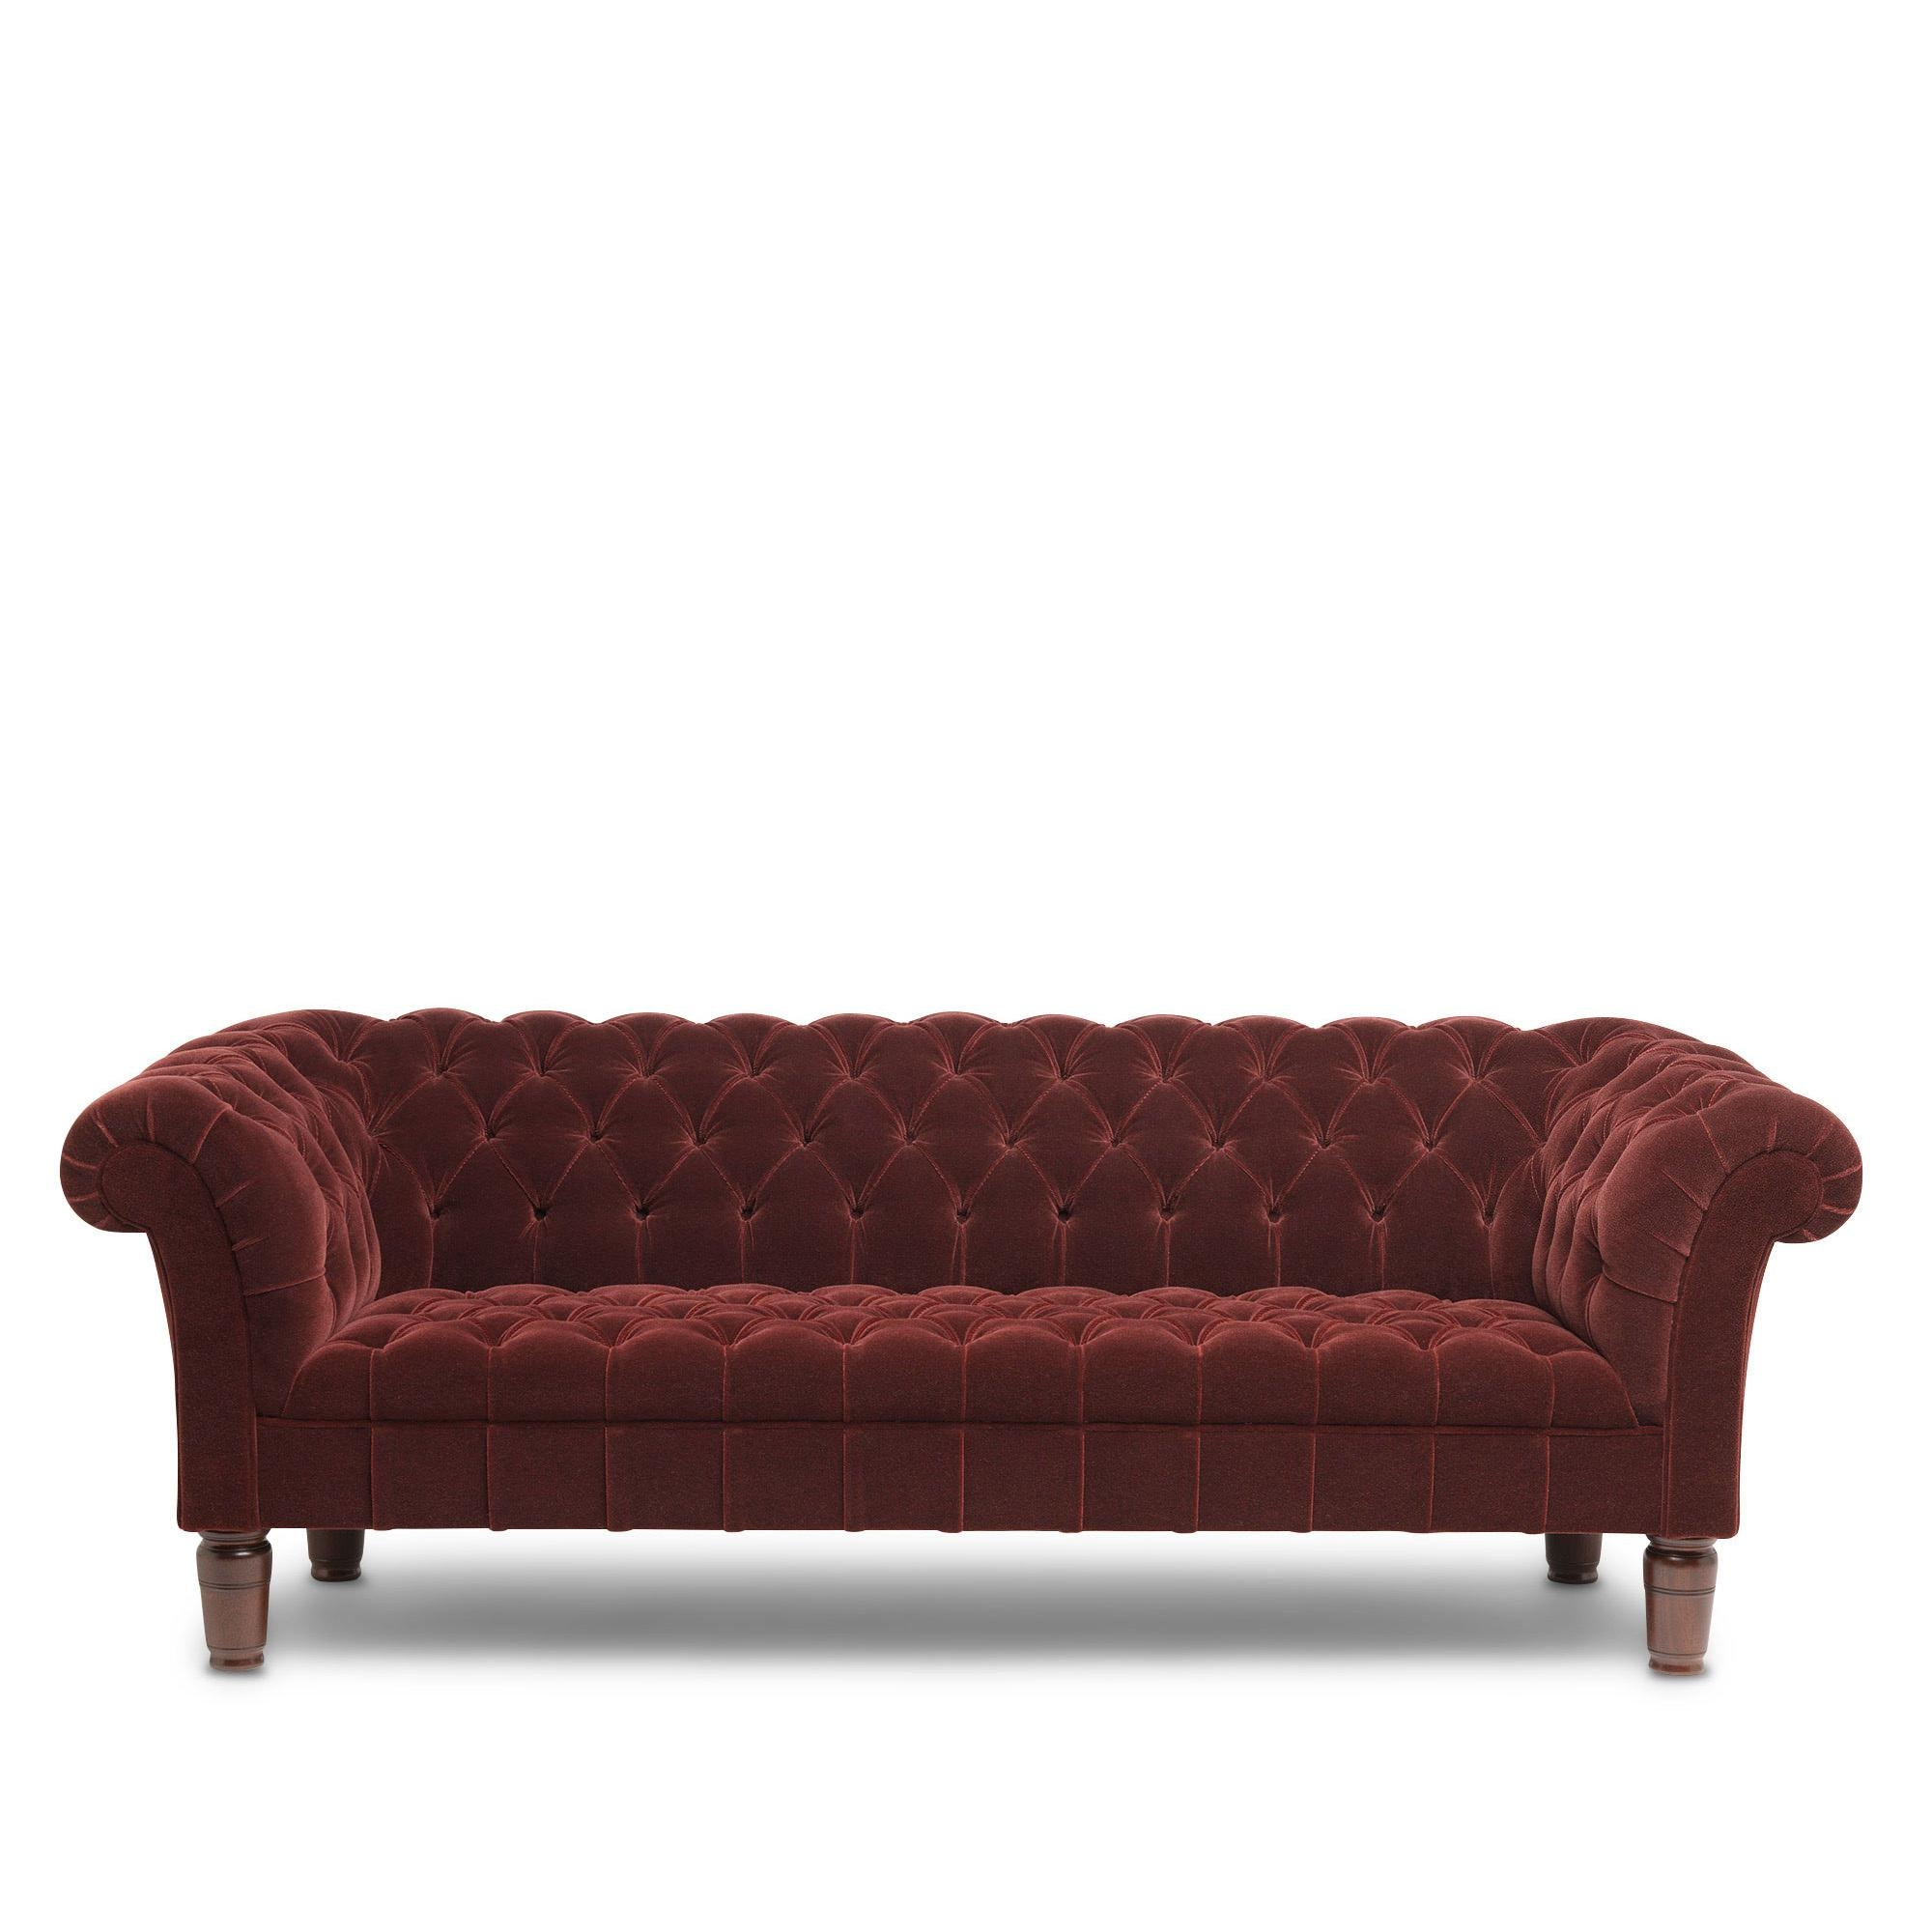 Chesterfield Sofa, Burgundy Mohair Pertaining To Red Chesterfield Sofas (View 16 of 20)